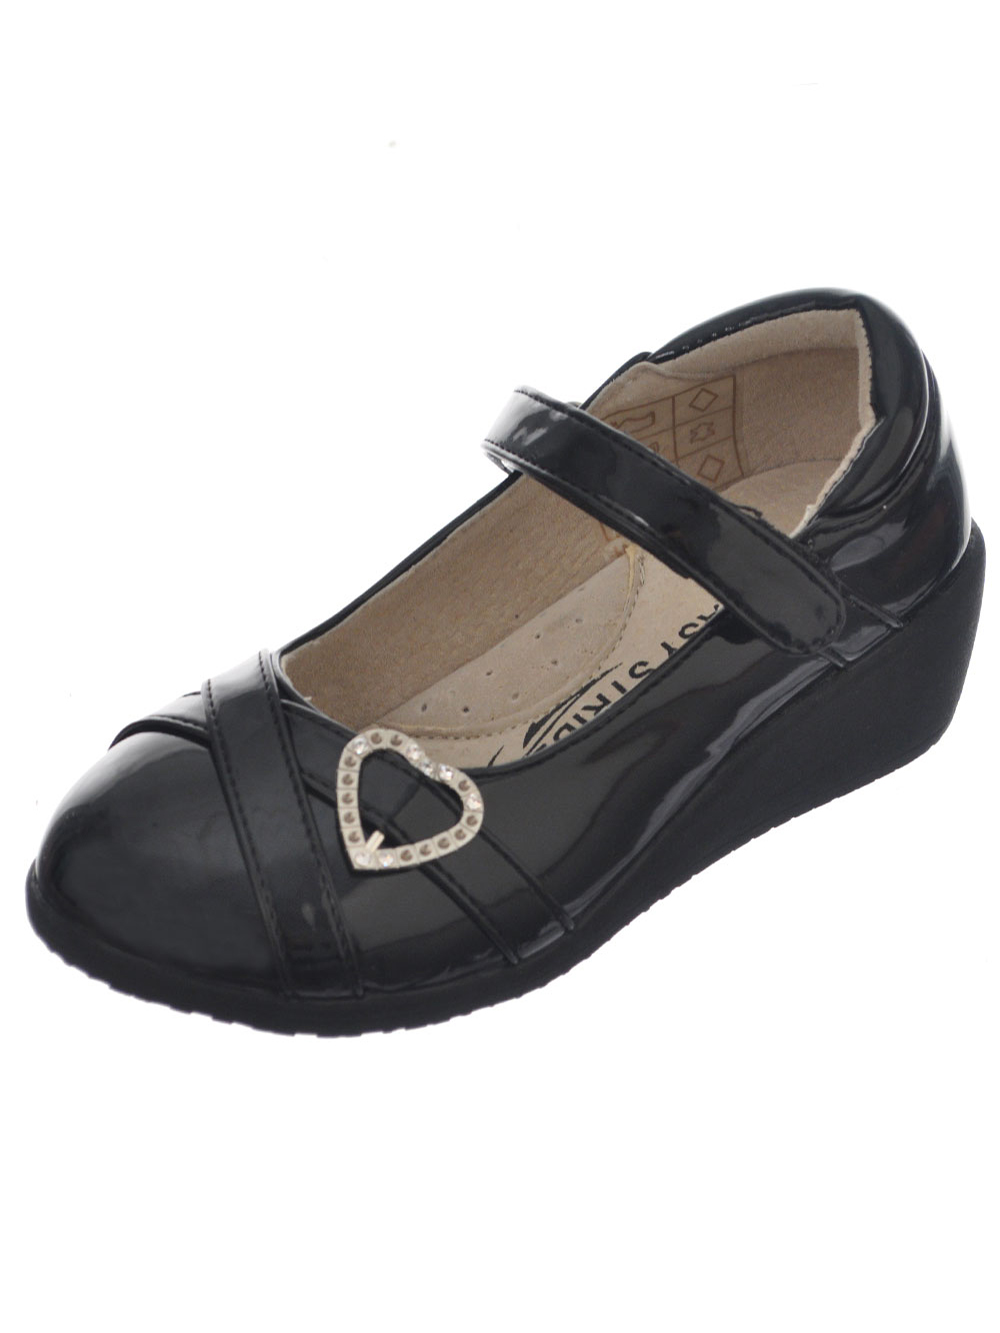 Image of Easy Strider Girls PatentStrapped Heart Mary Janes Youth Sizes 13  4  black 1 youth